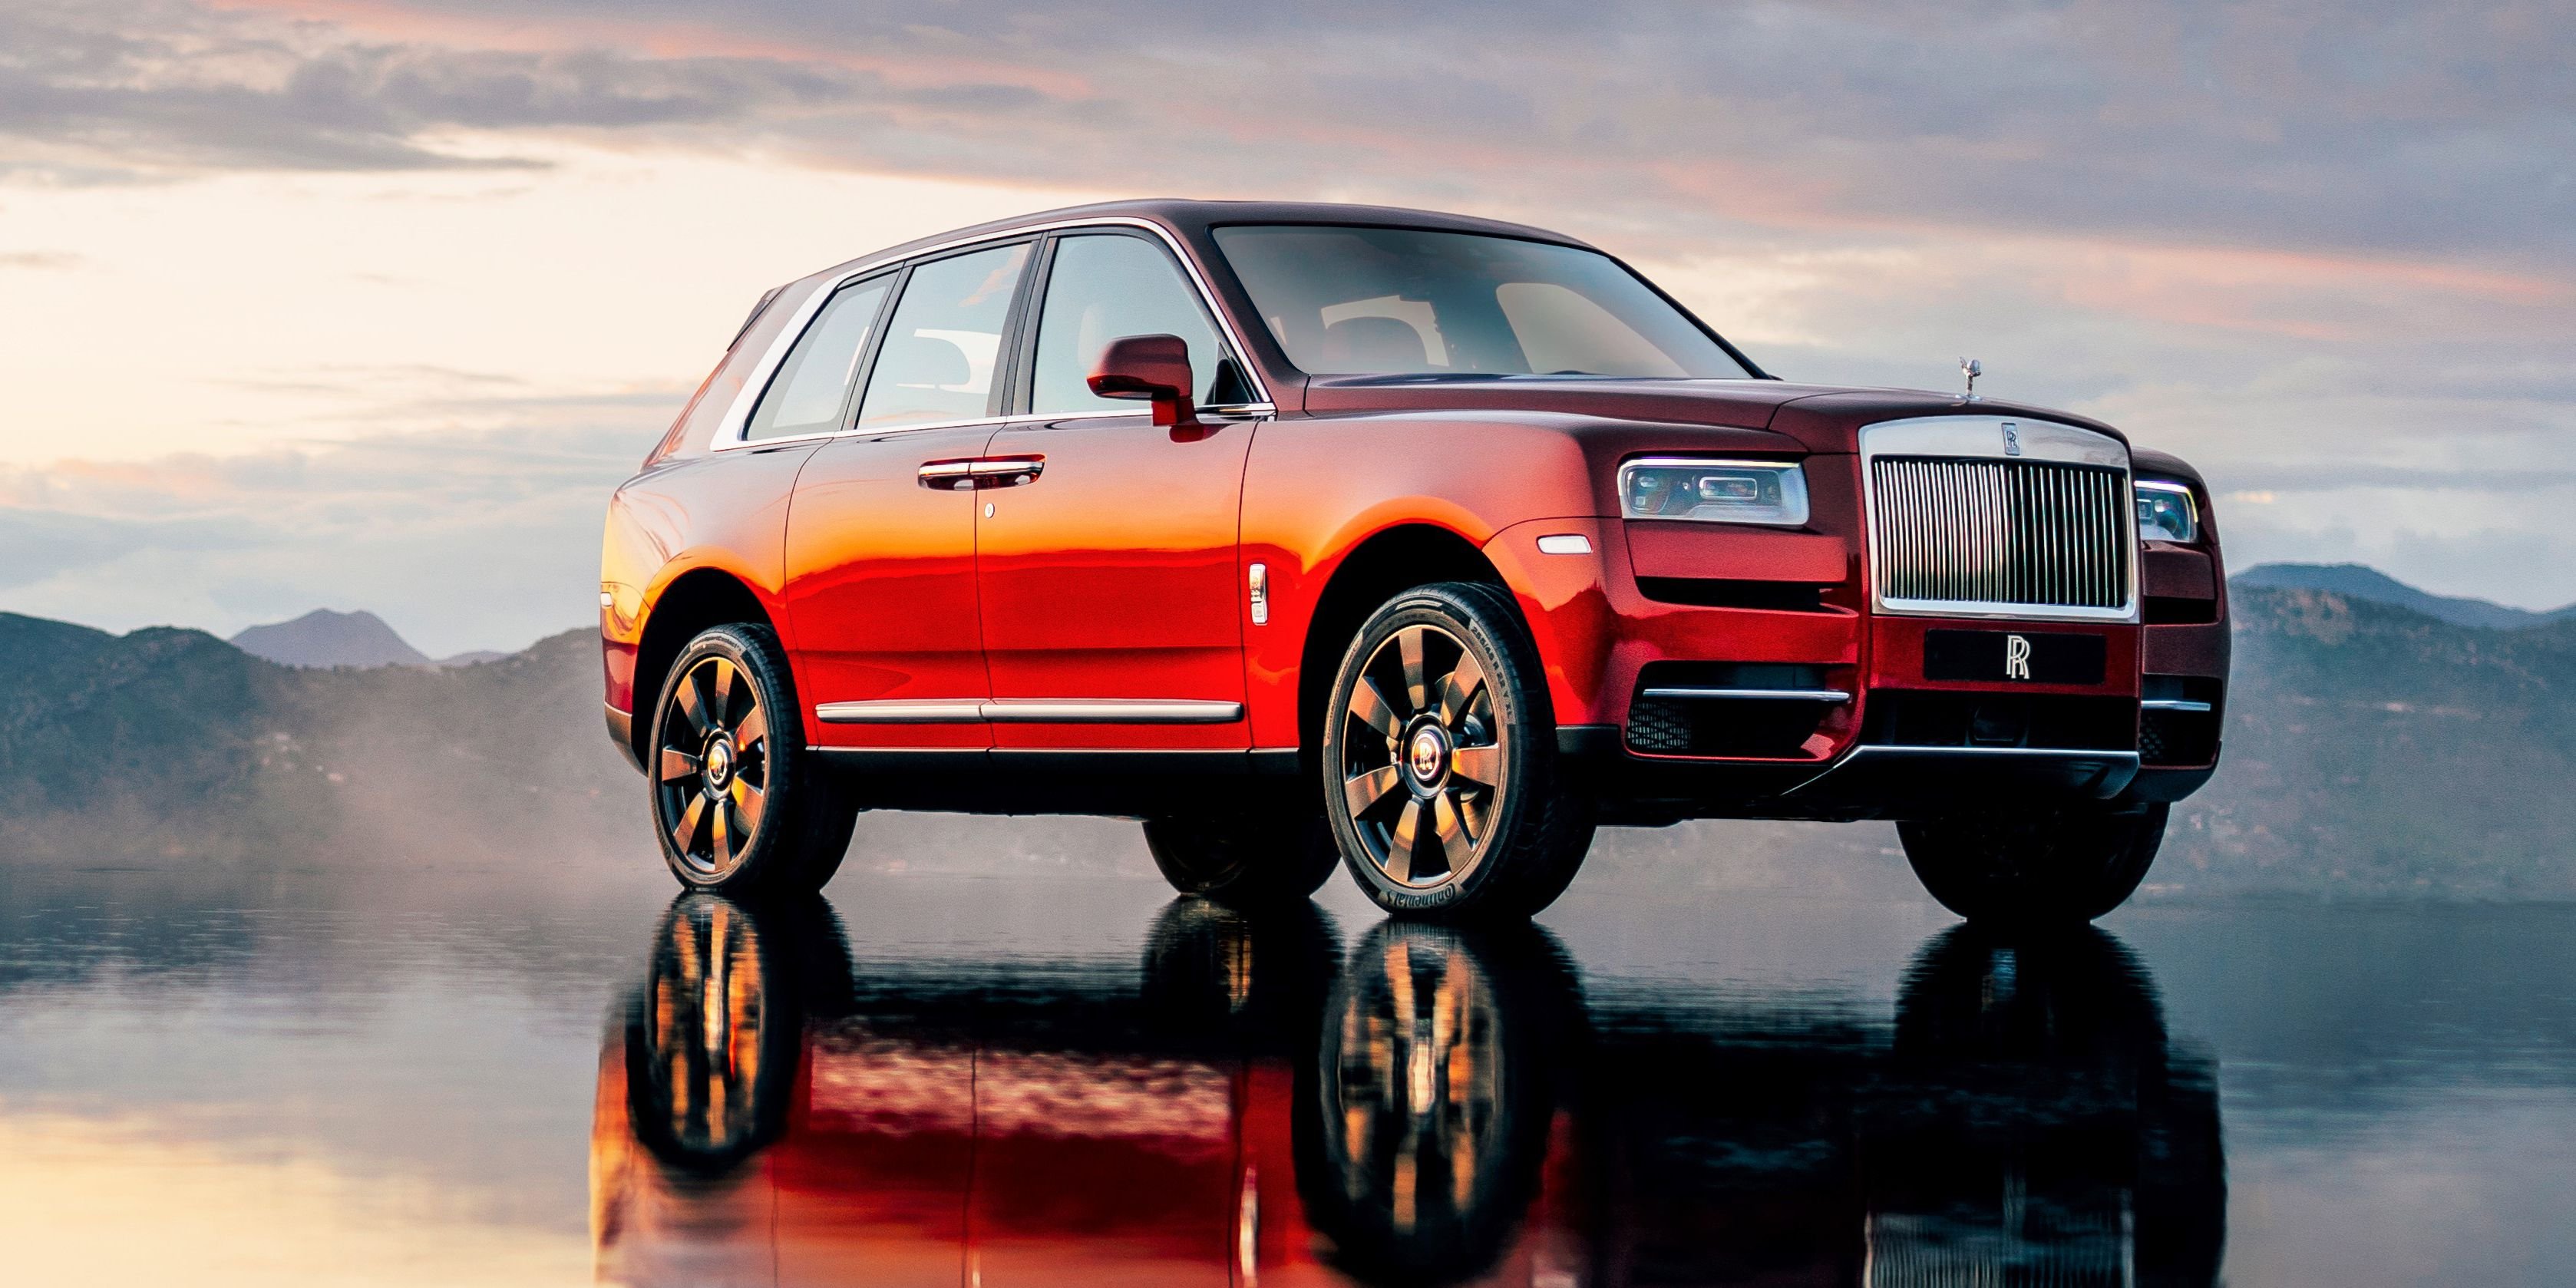 20 Best Luxury Car Brands Top Expensive Car Brands In The World